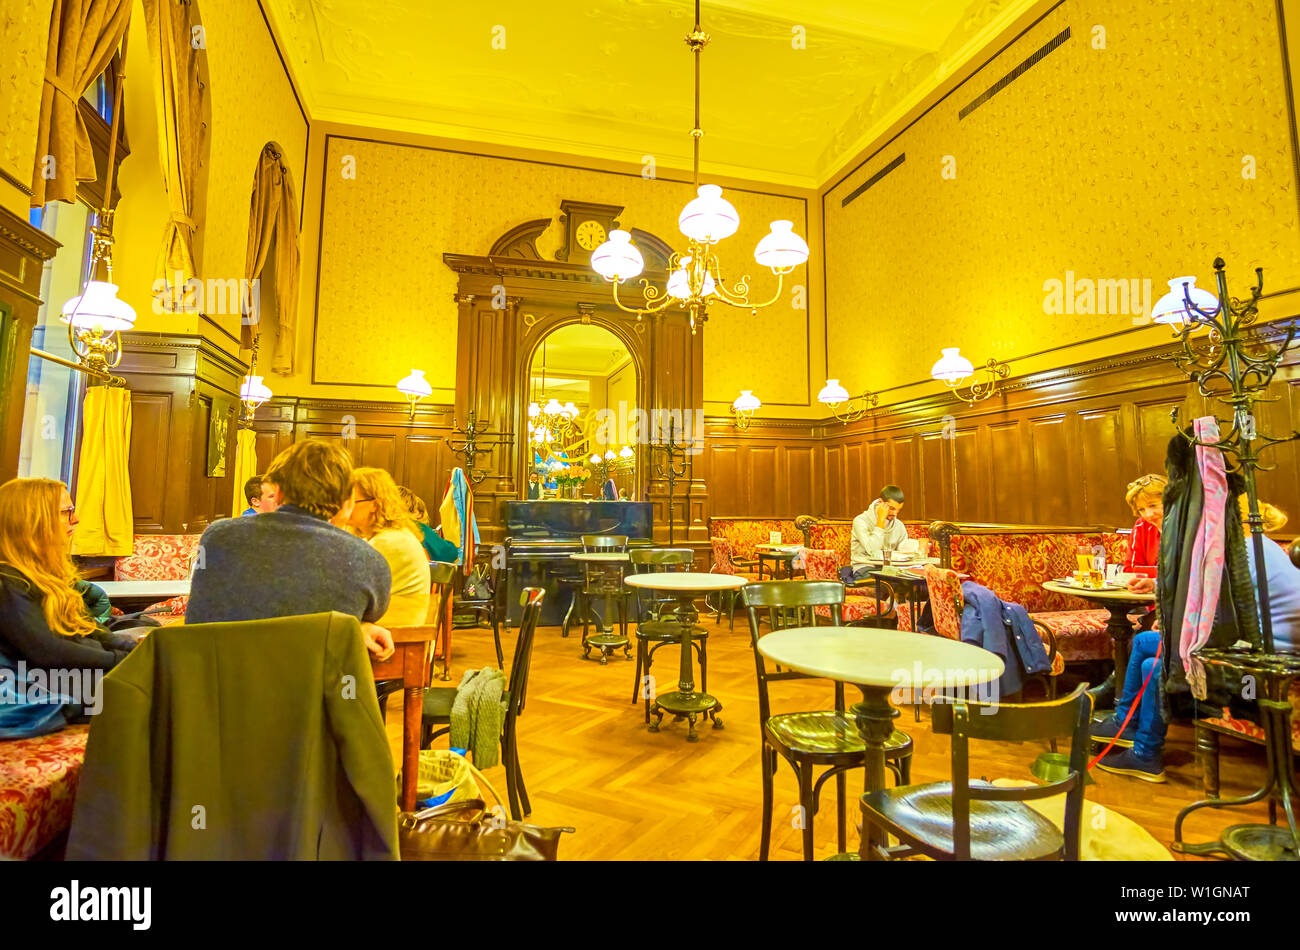 VIENNA, AUSTRIA - FEBRUARY 18, 2019: The cozy Cafe Sperl with vintage interior and furniture is the best place to spend evening time, drinking authent - Stock Image